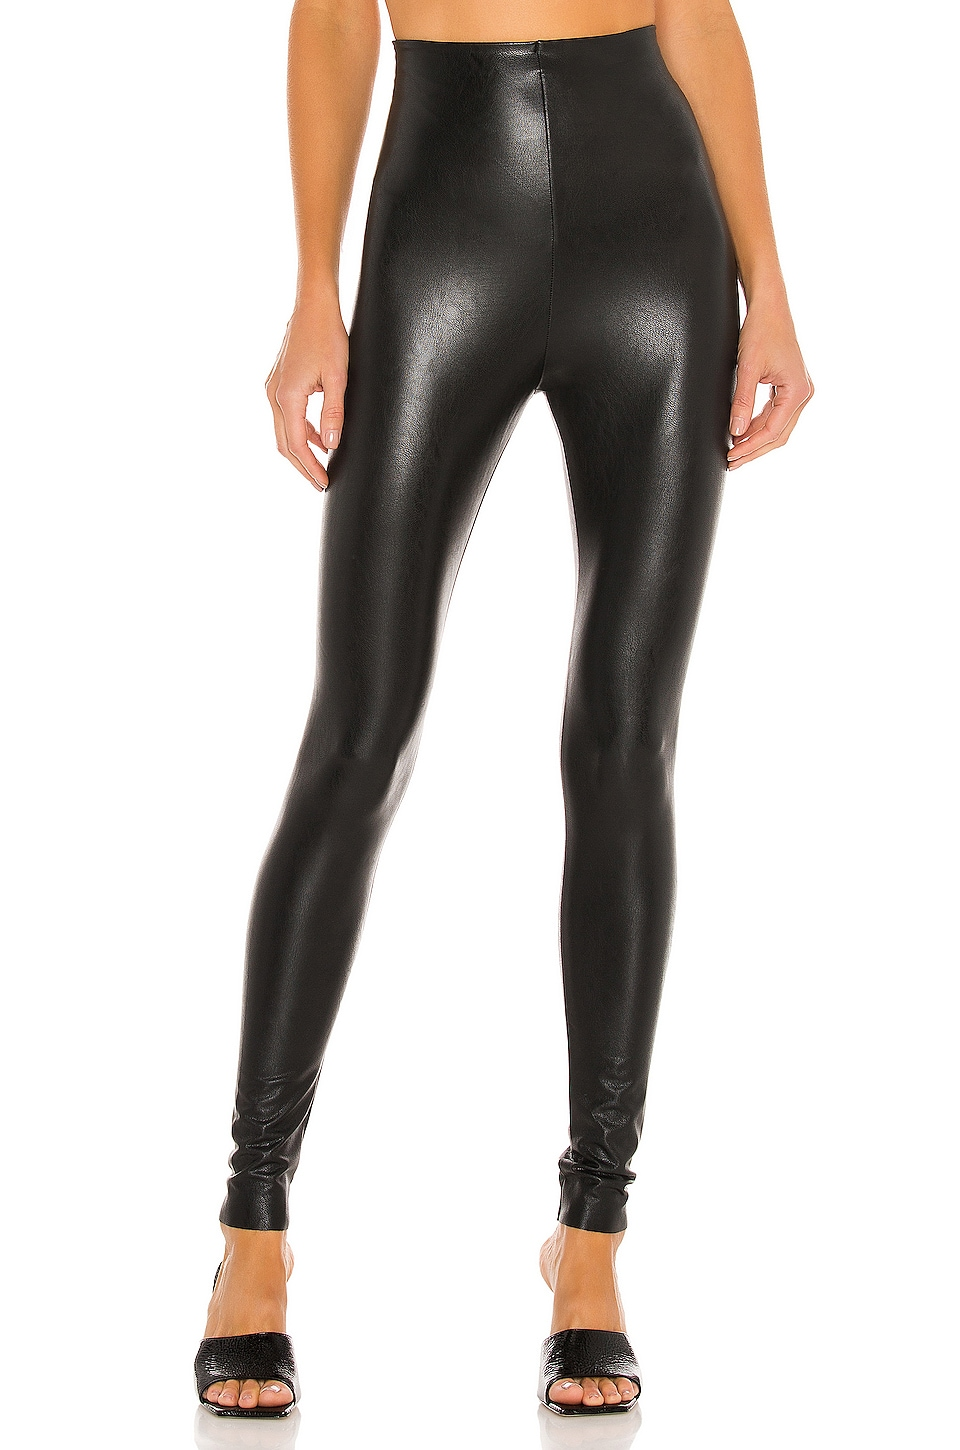 Perfect Control Faux Leather Legging             Commando                                                                                                       CA$ 130.31 3